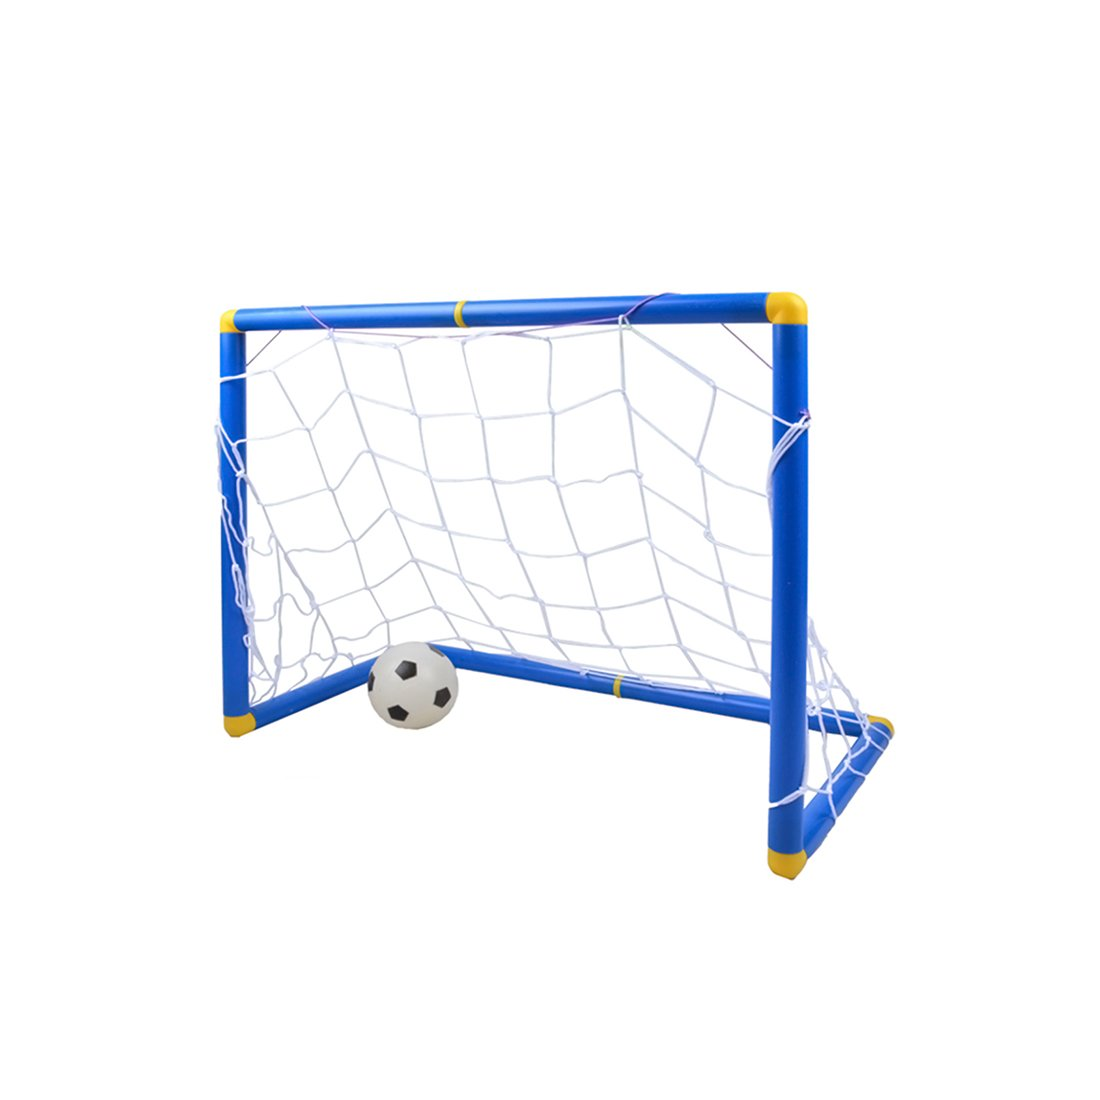 RuiyiF Soccer Goal Net for Kids Toddlers Indoor Outdoor Backyard Includes Goal with Net Mini Soccer Ball Hand Pump - Small